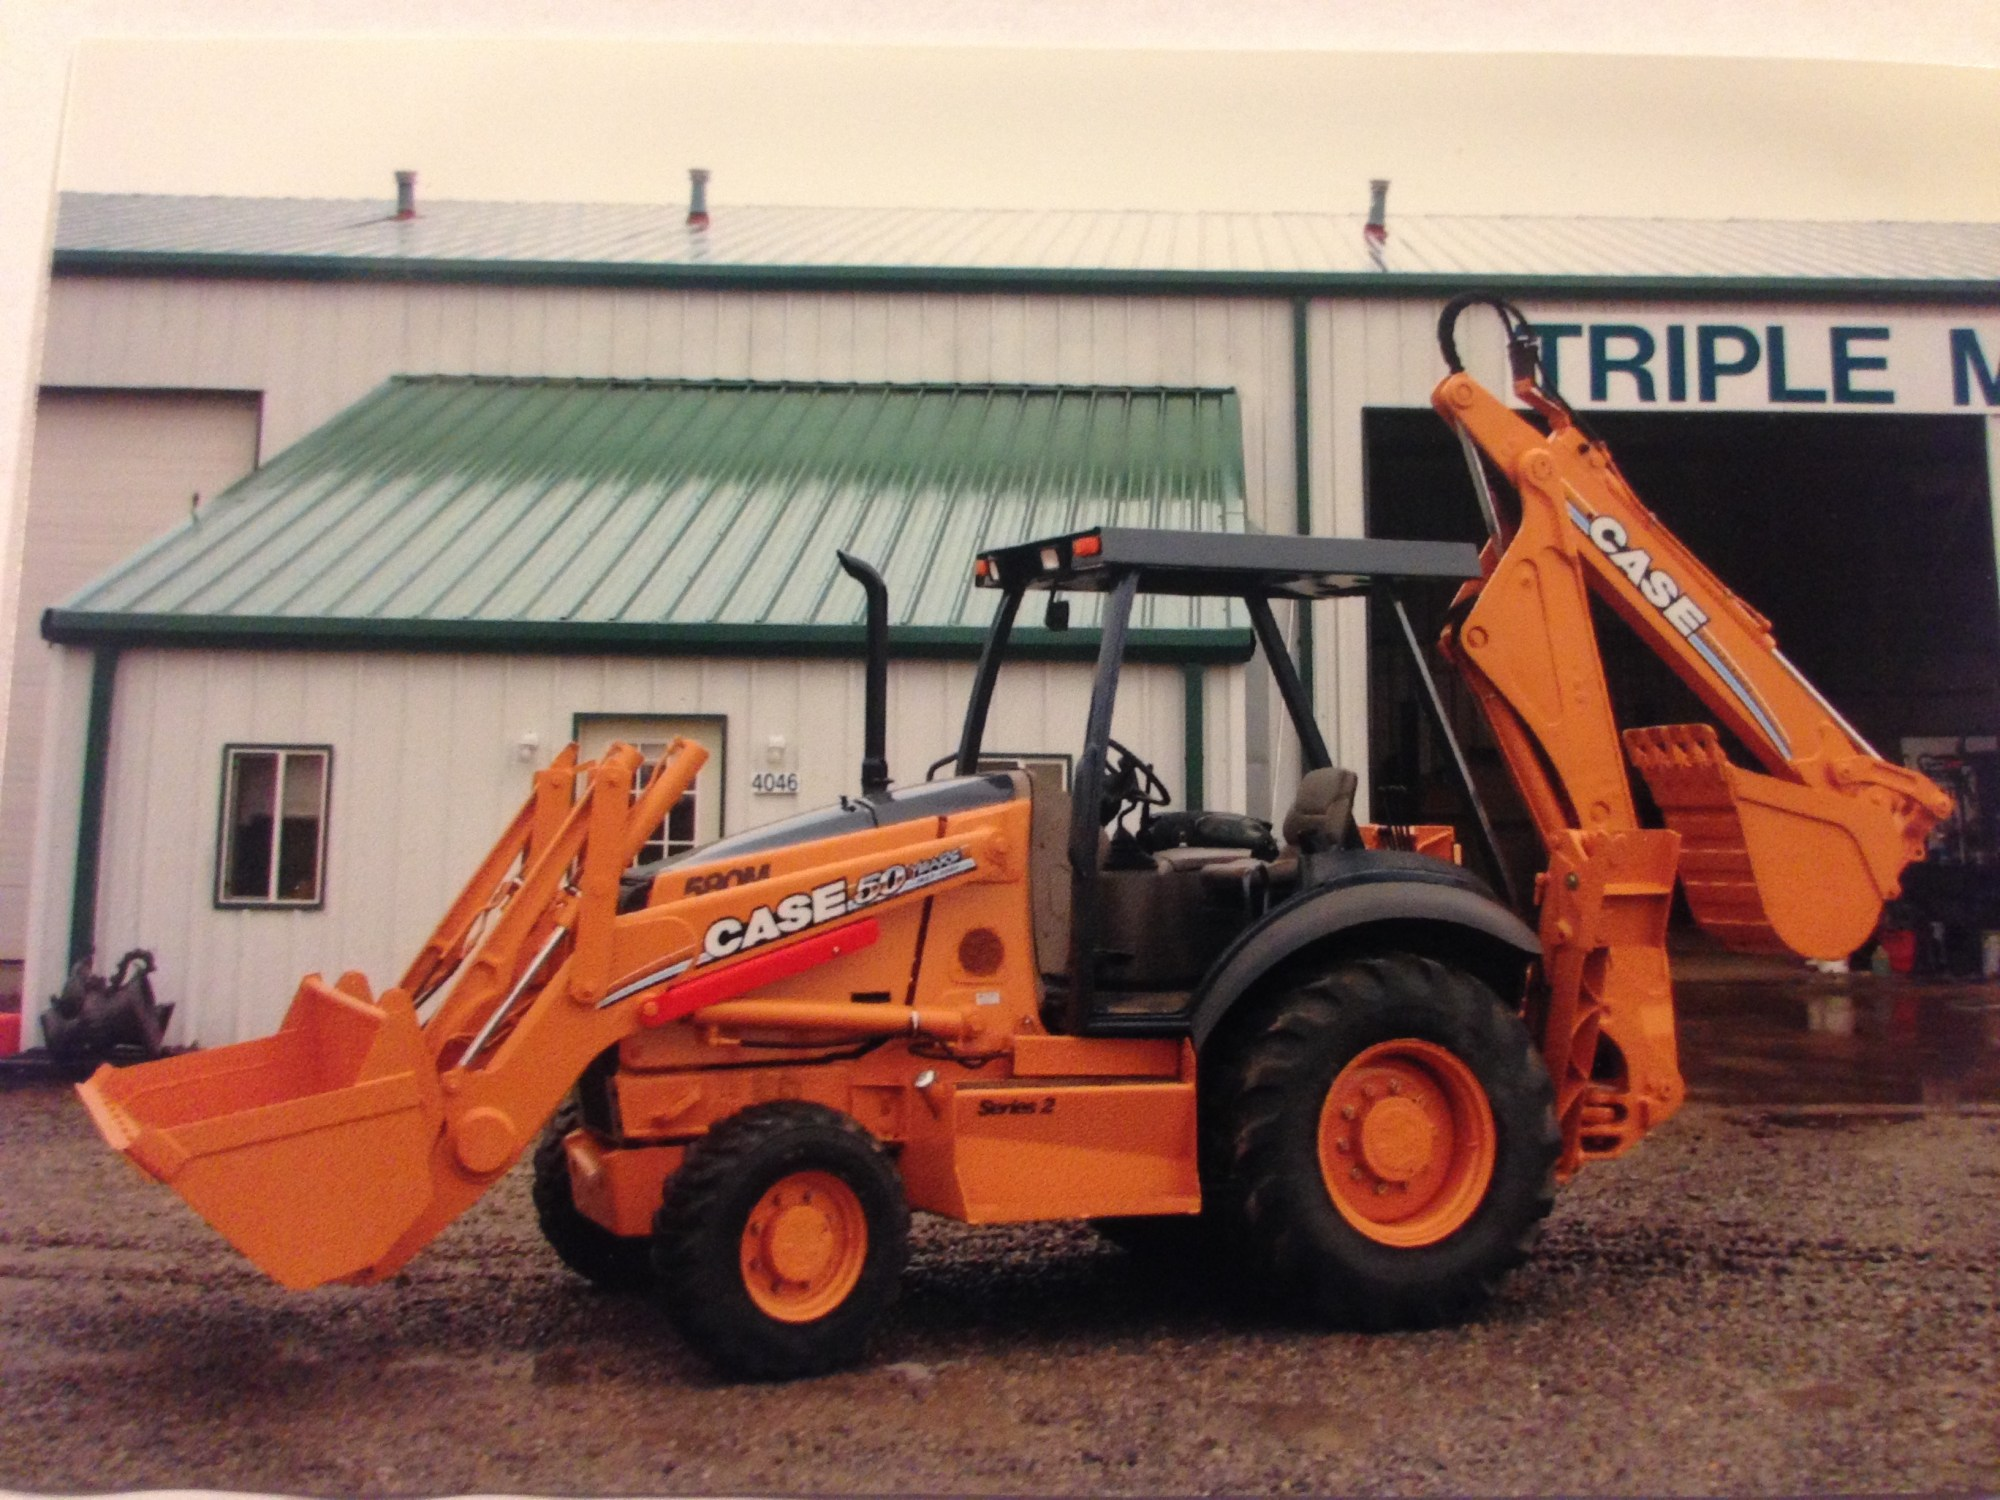 hight resolution of case 580m loader backhoe project done at triple m mechanical in benton mo missouri